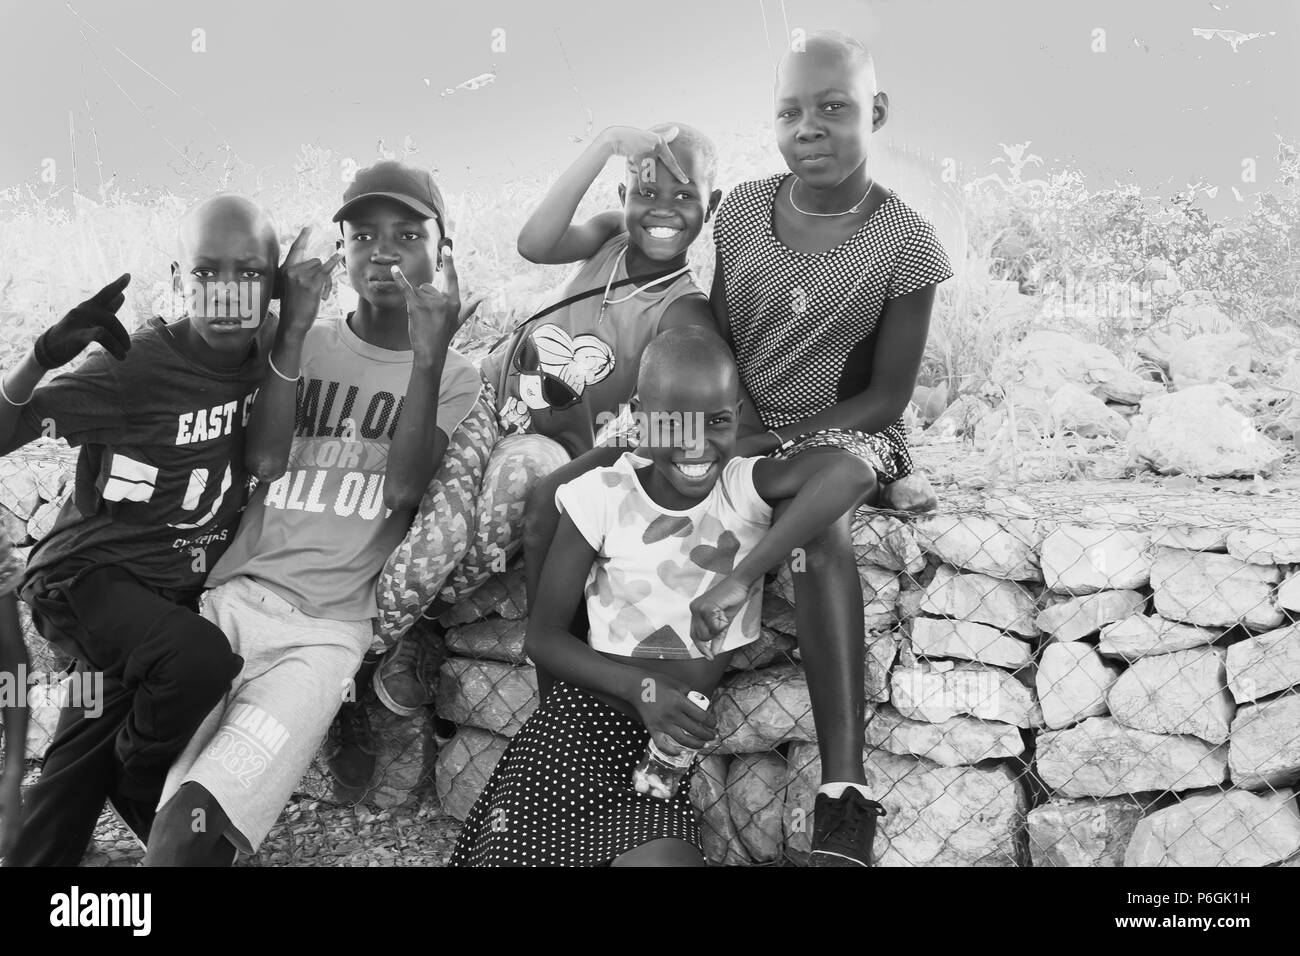 KHOHAXIS, NAMIBIA - MAY 21 2018;  Group of African youth happily responding to being photographed - Stock Image